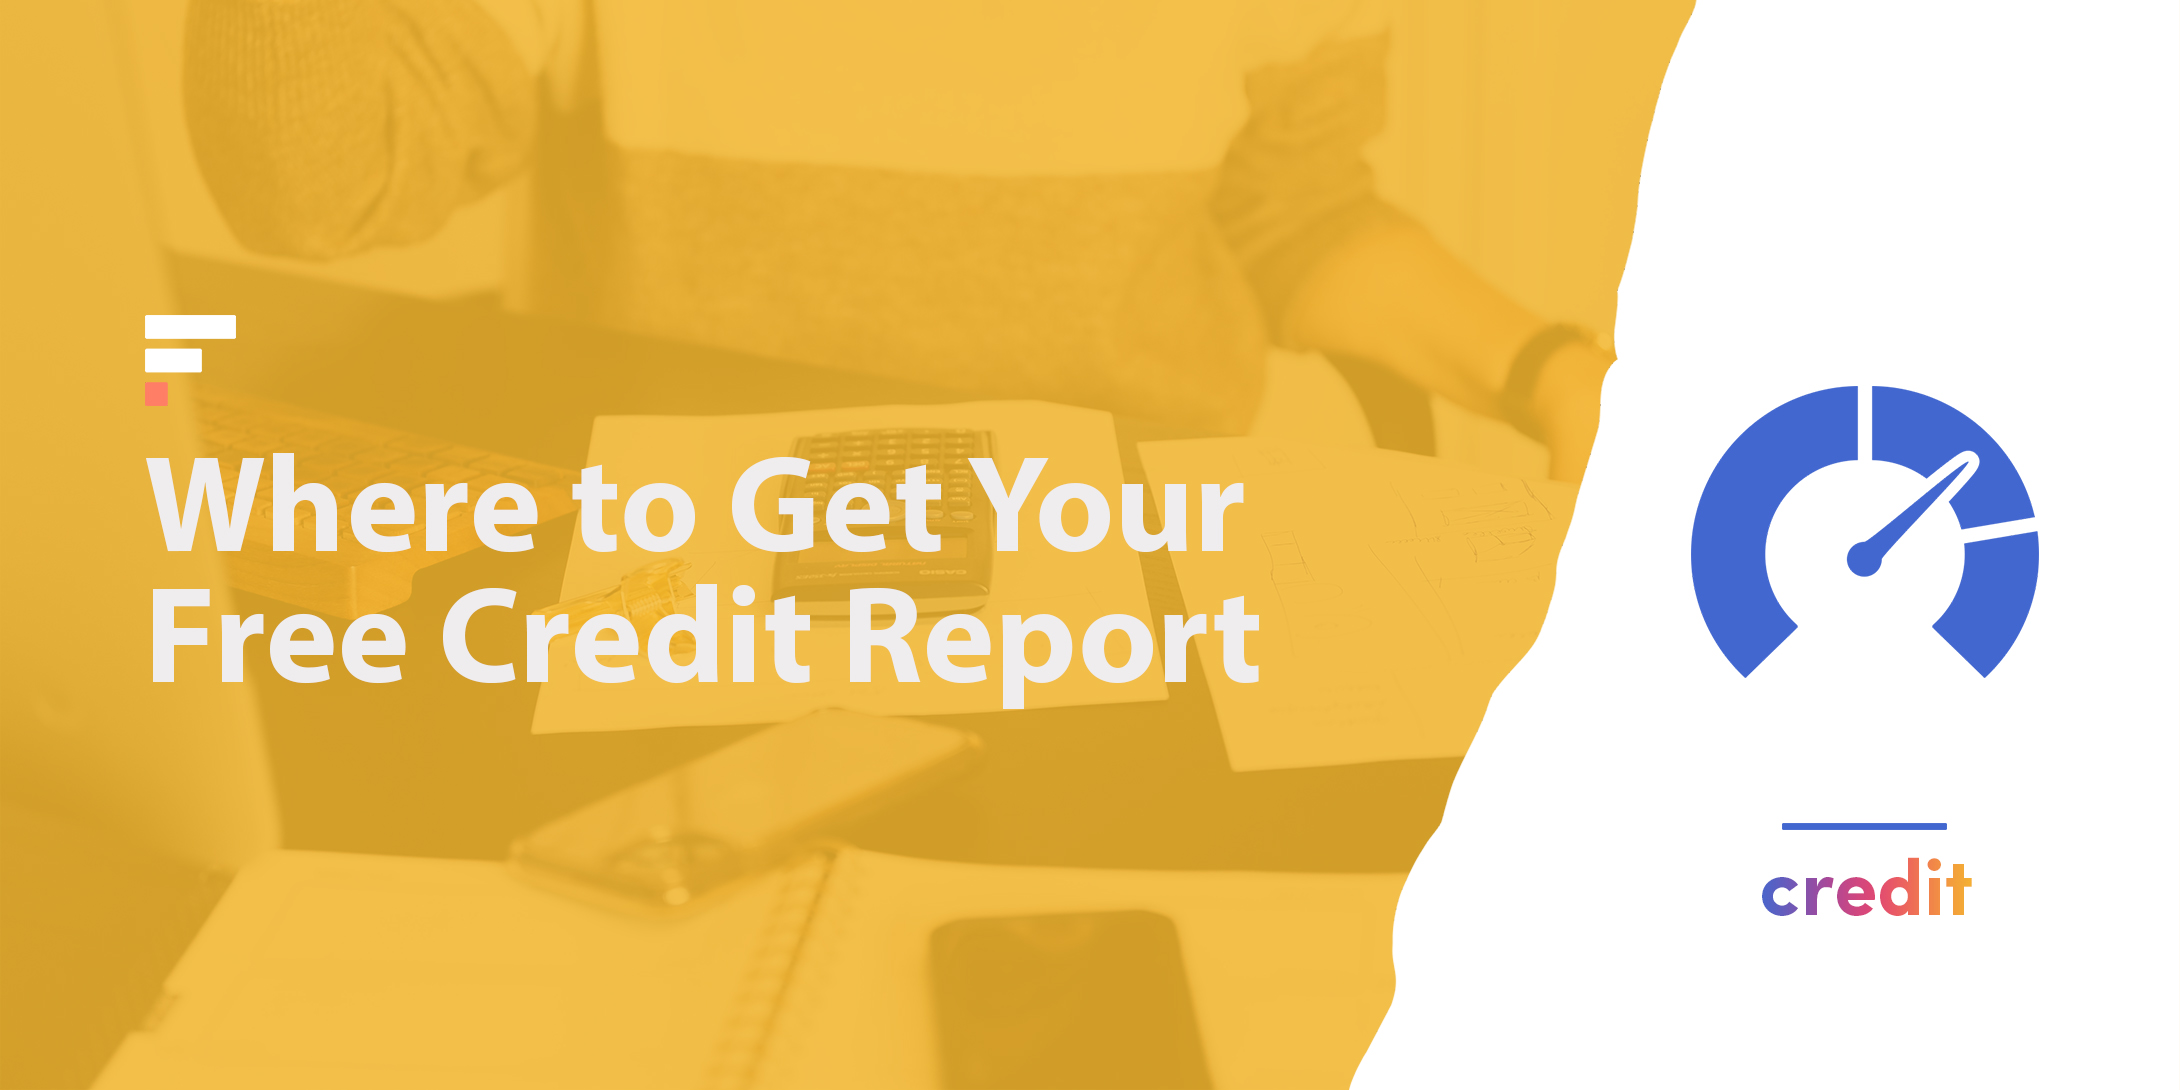 Where to Get Your Free Credit Report